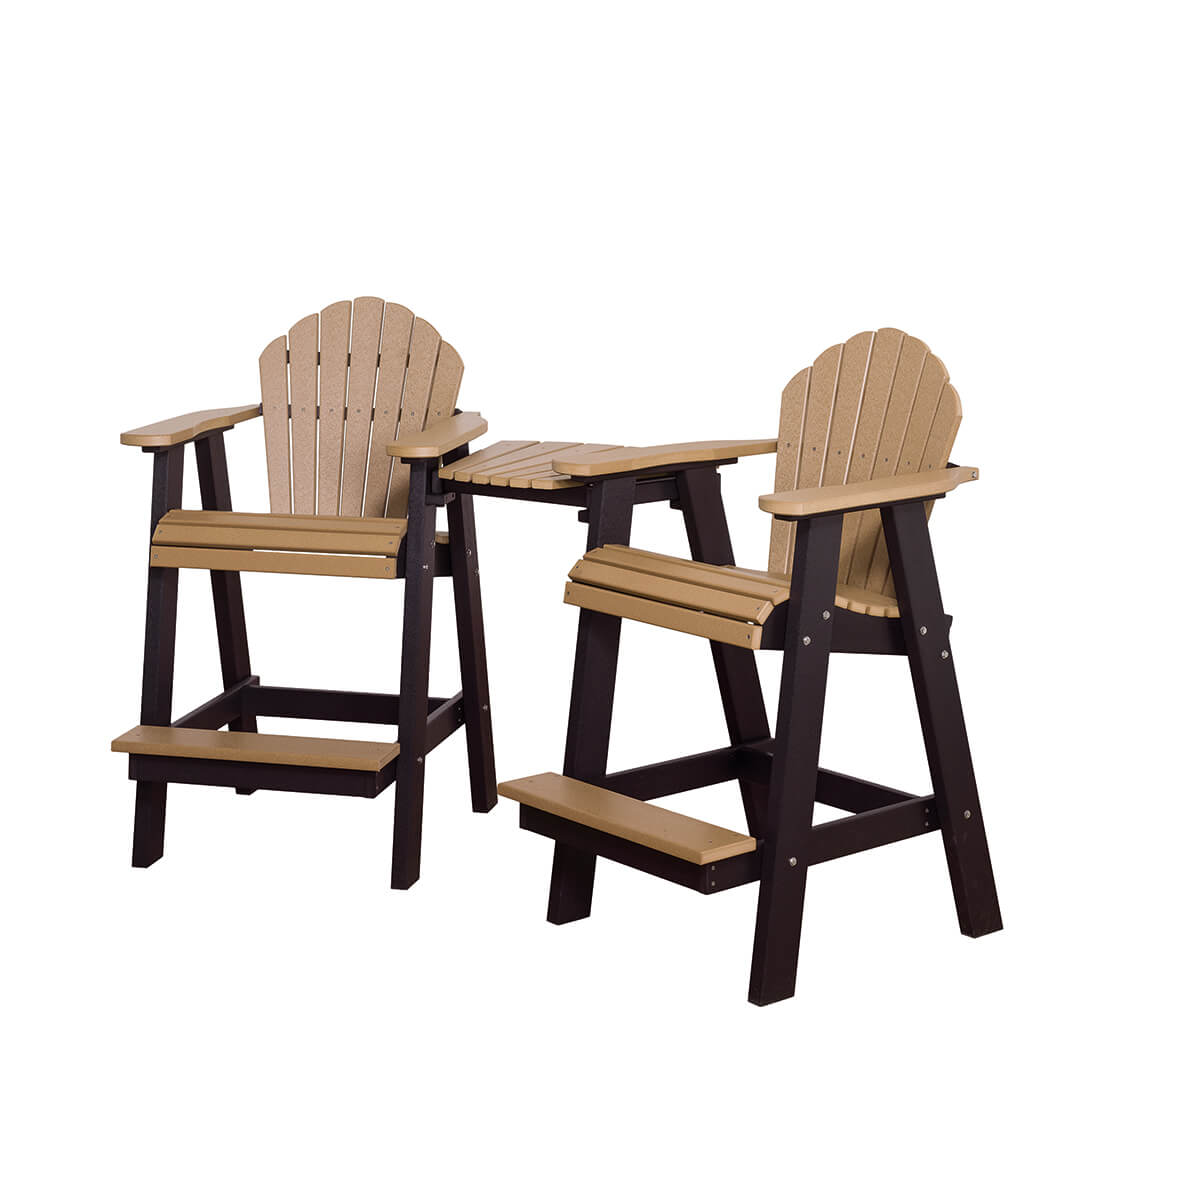 Cheyenne Balcony Chairs with Fusion Table